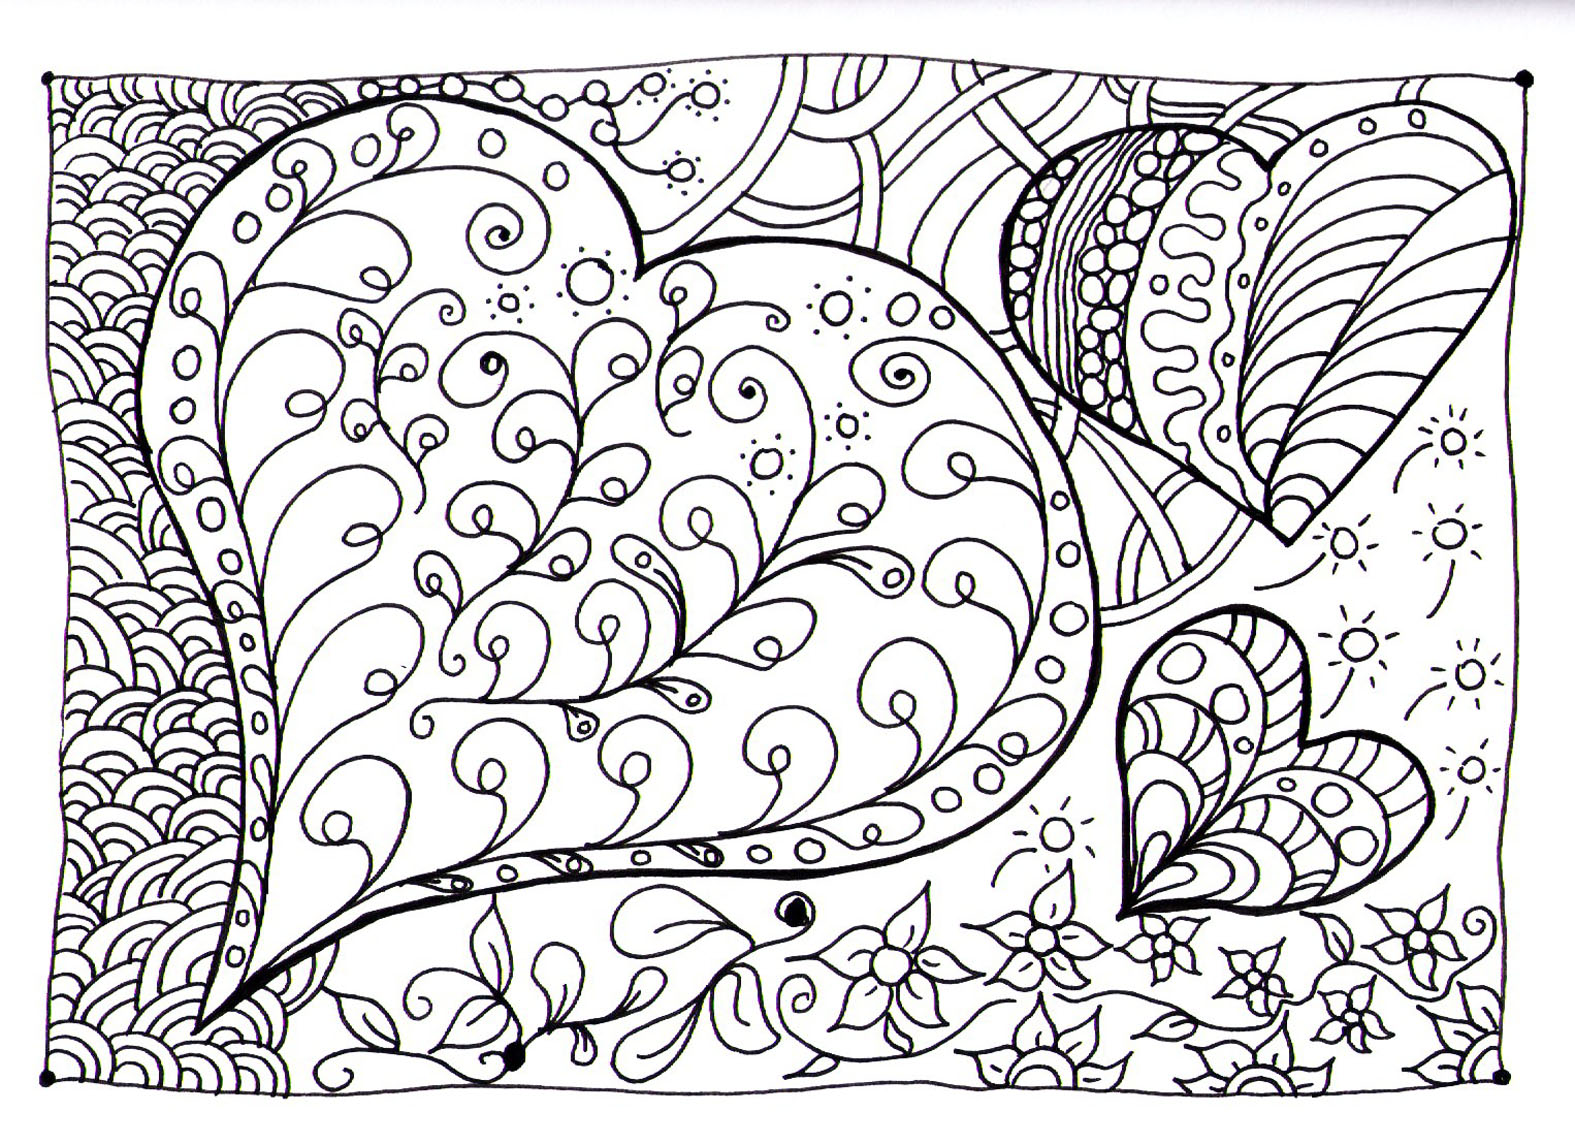 Coloring adults stress - Heart Zen From The Gallery Zen Anti Stress